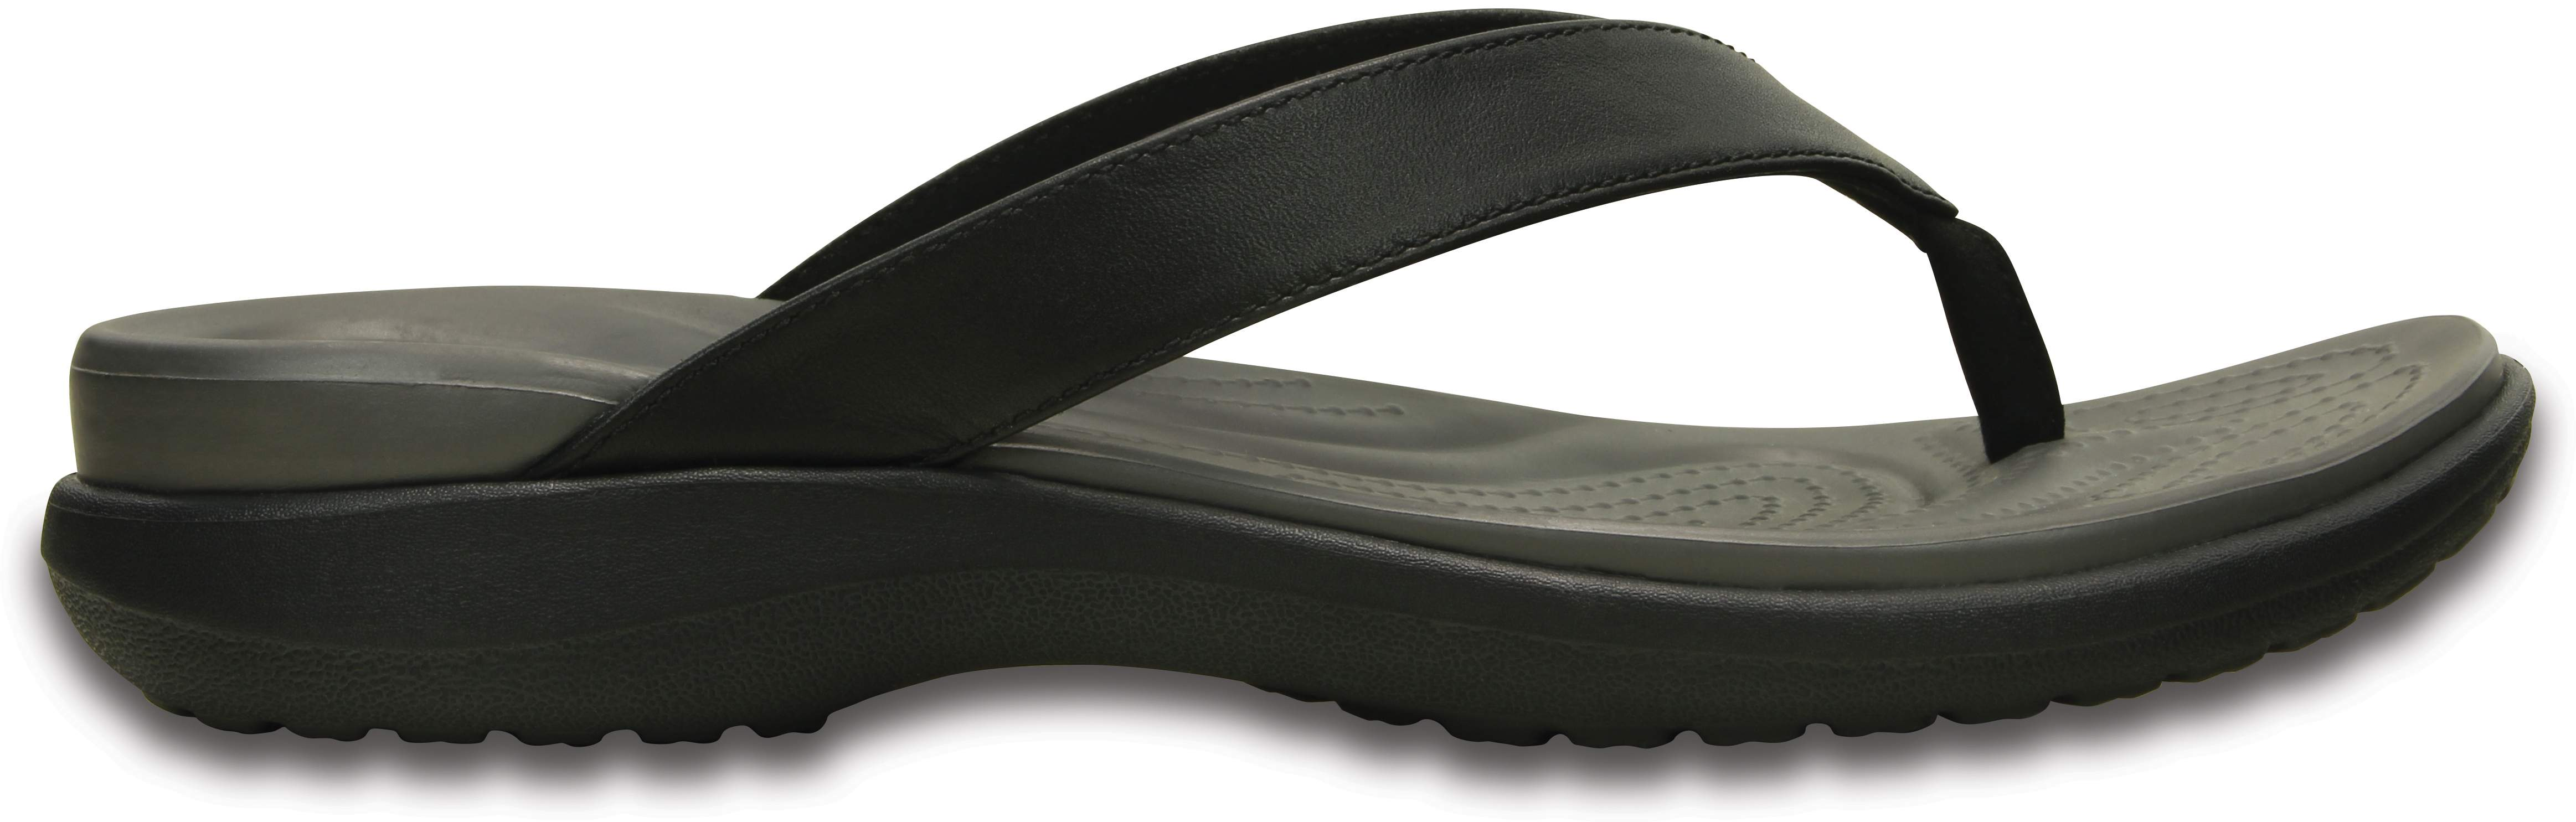 Crocs Capri V Women's Flip ... Flop Sandals